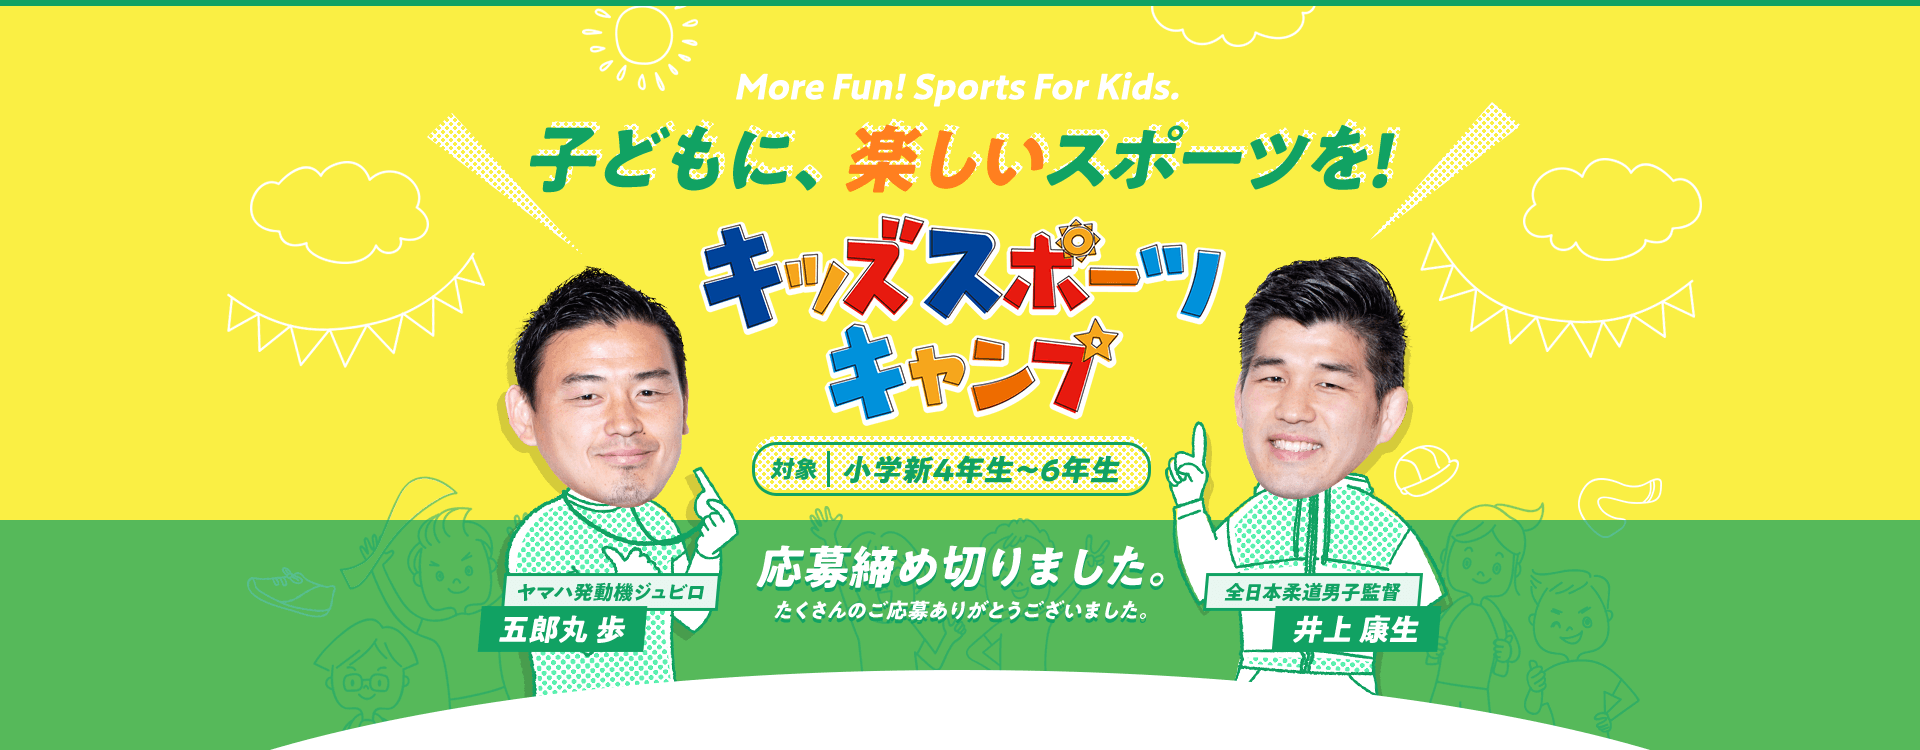 More Fun! Sports For Kids. 子どもに、楽しいスポーツを!キッズスポーツキャンプ